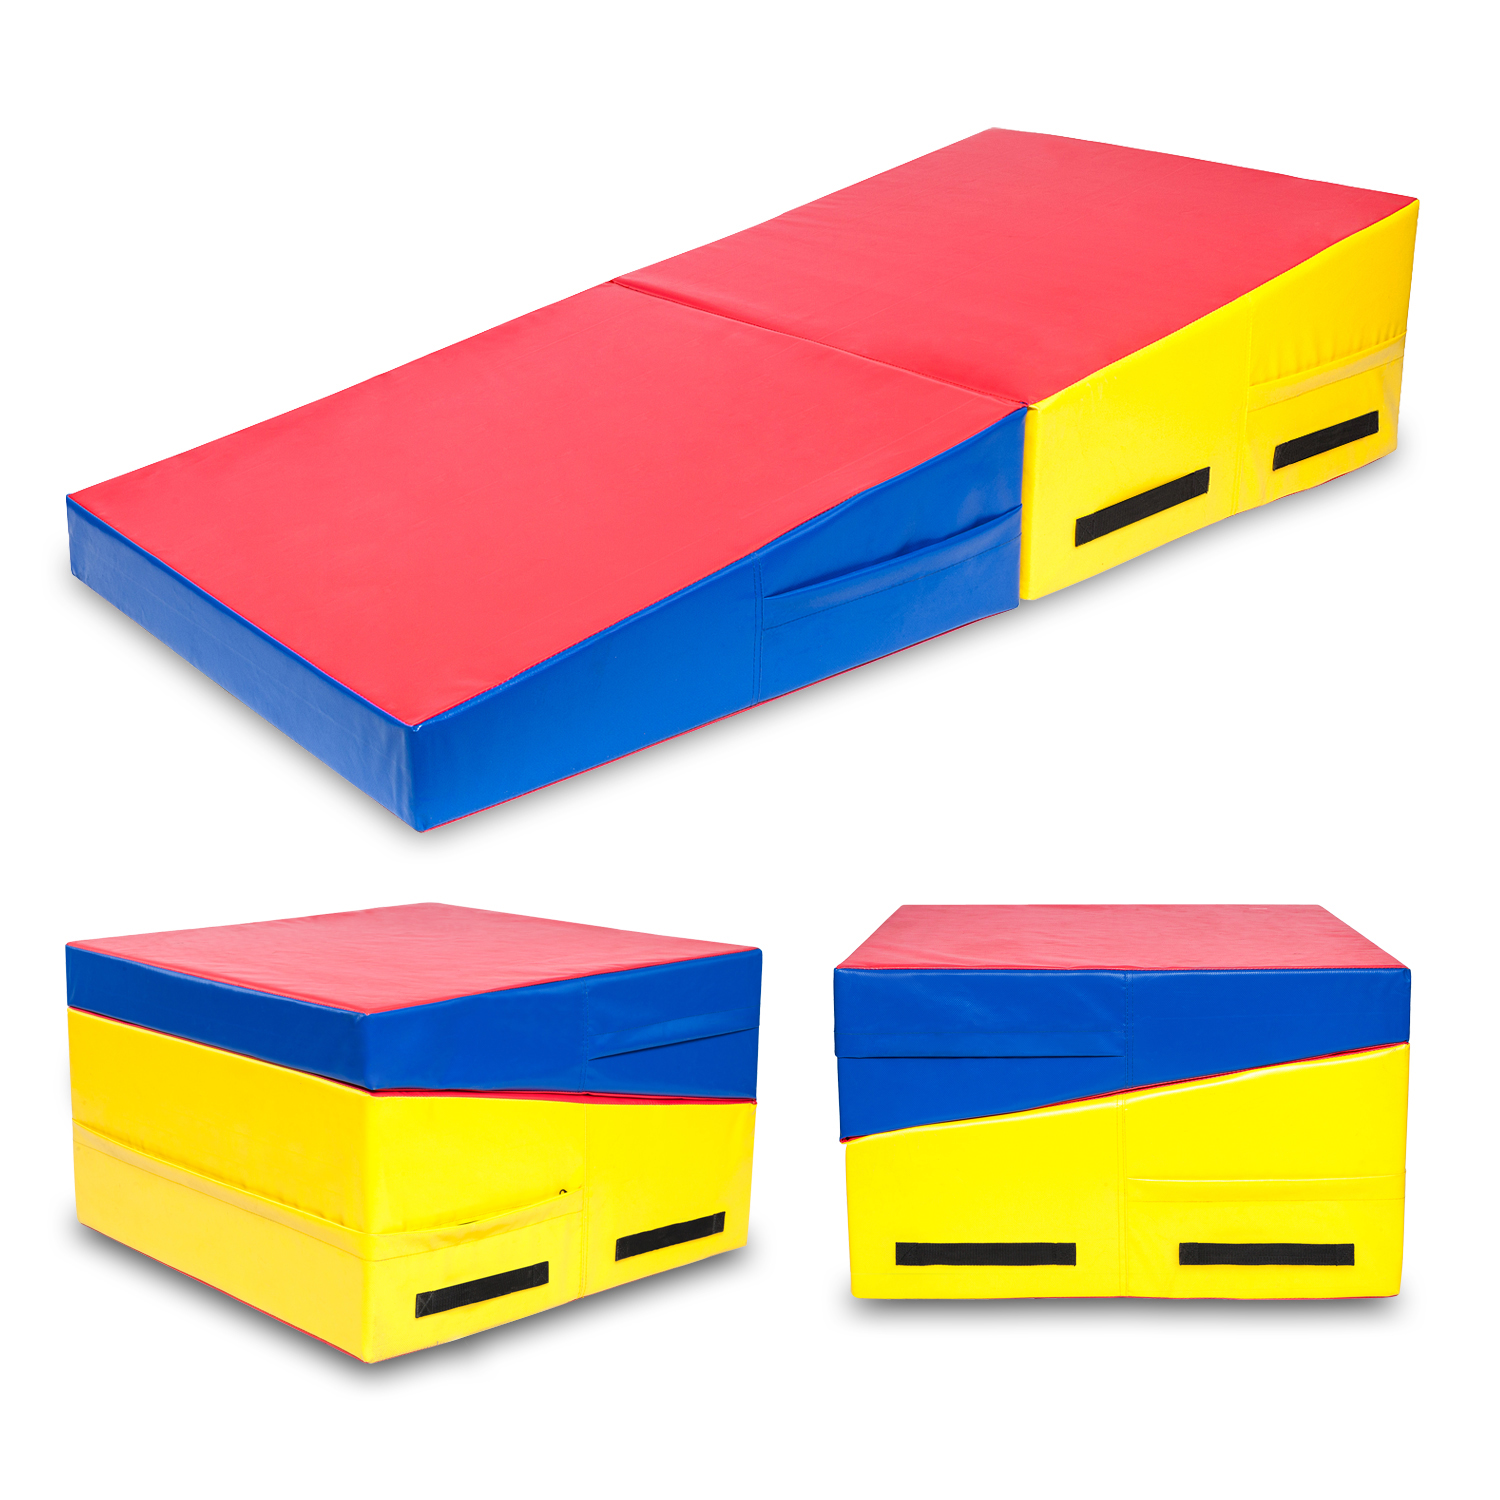 """Zimtown 60"""" x 30"""" x 14"""" / 48"""" x 24"""" x 14"""" Gymnastics Cheese Mat, Folding Incline Mat Tumbling Wedge Skill Shape, for Home Gym Aerobics Exercise, Stretching"""